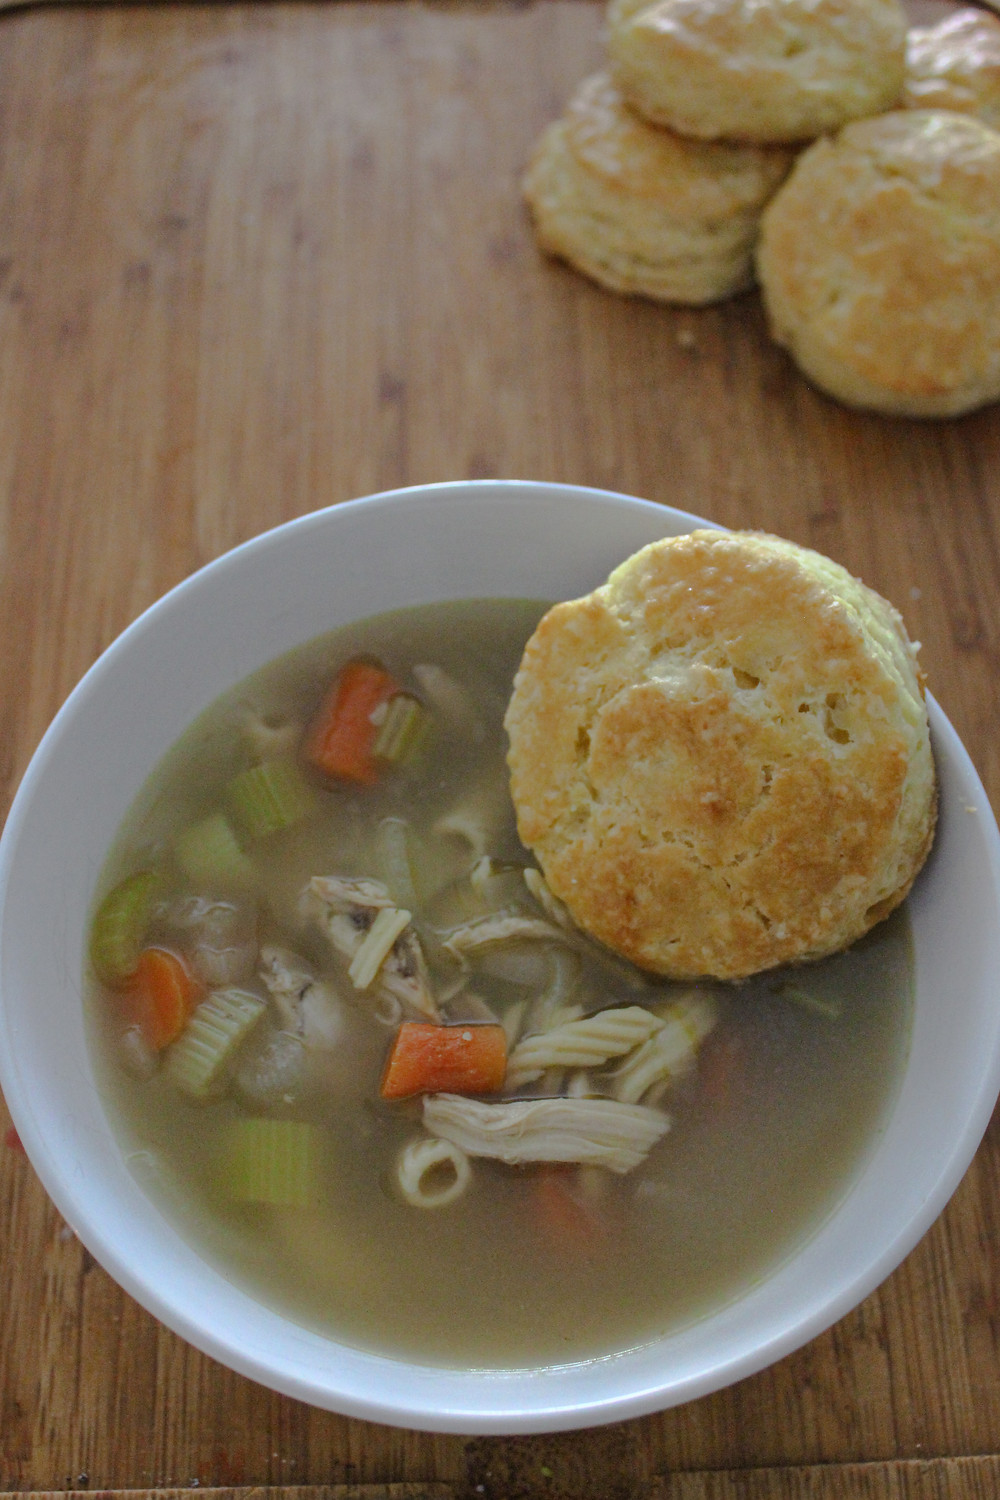 Chicken noodle soup and biscuit